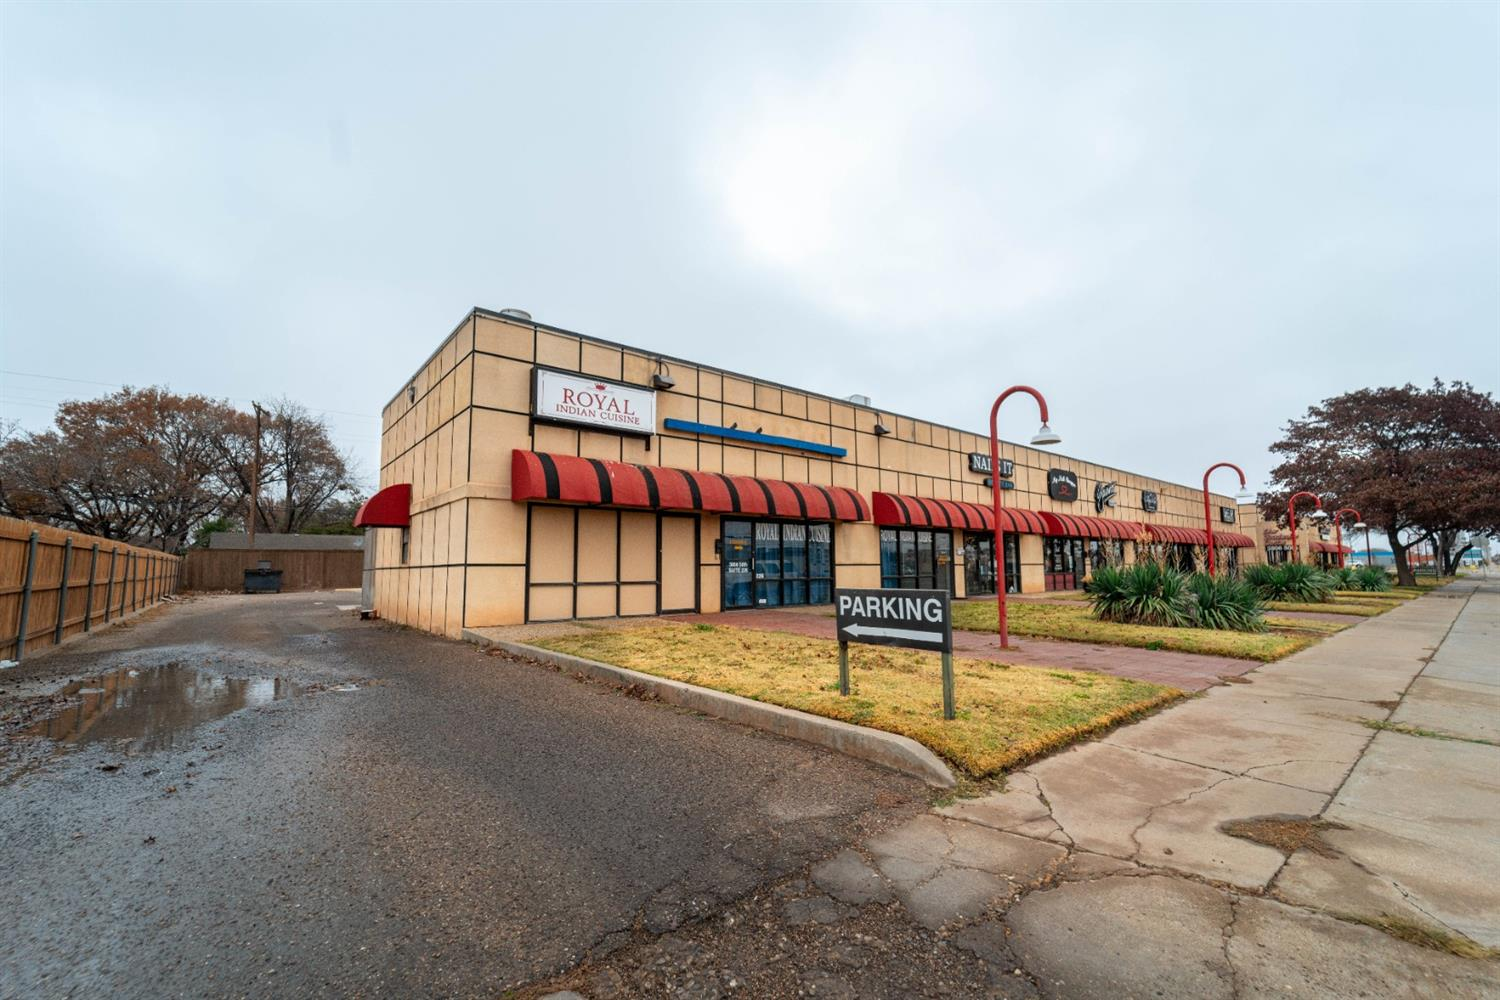 13 fully occupied retail condos located in central Lubbock, great tenant base made up of mostly long term occupants. Great income with even more potential!